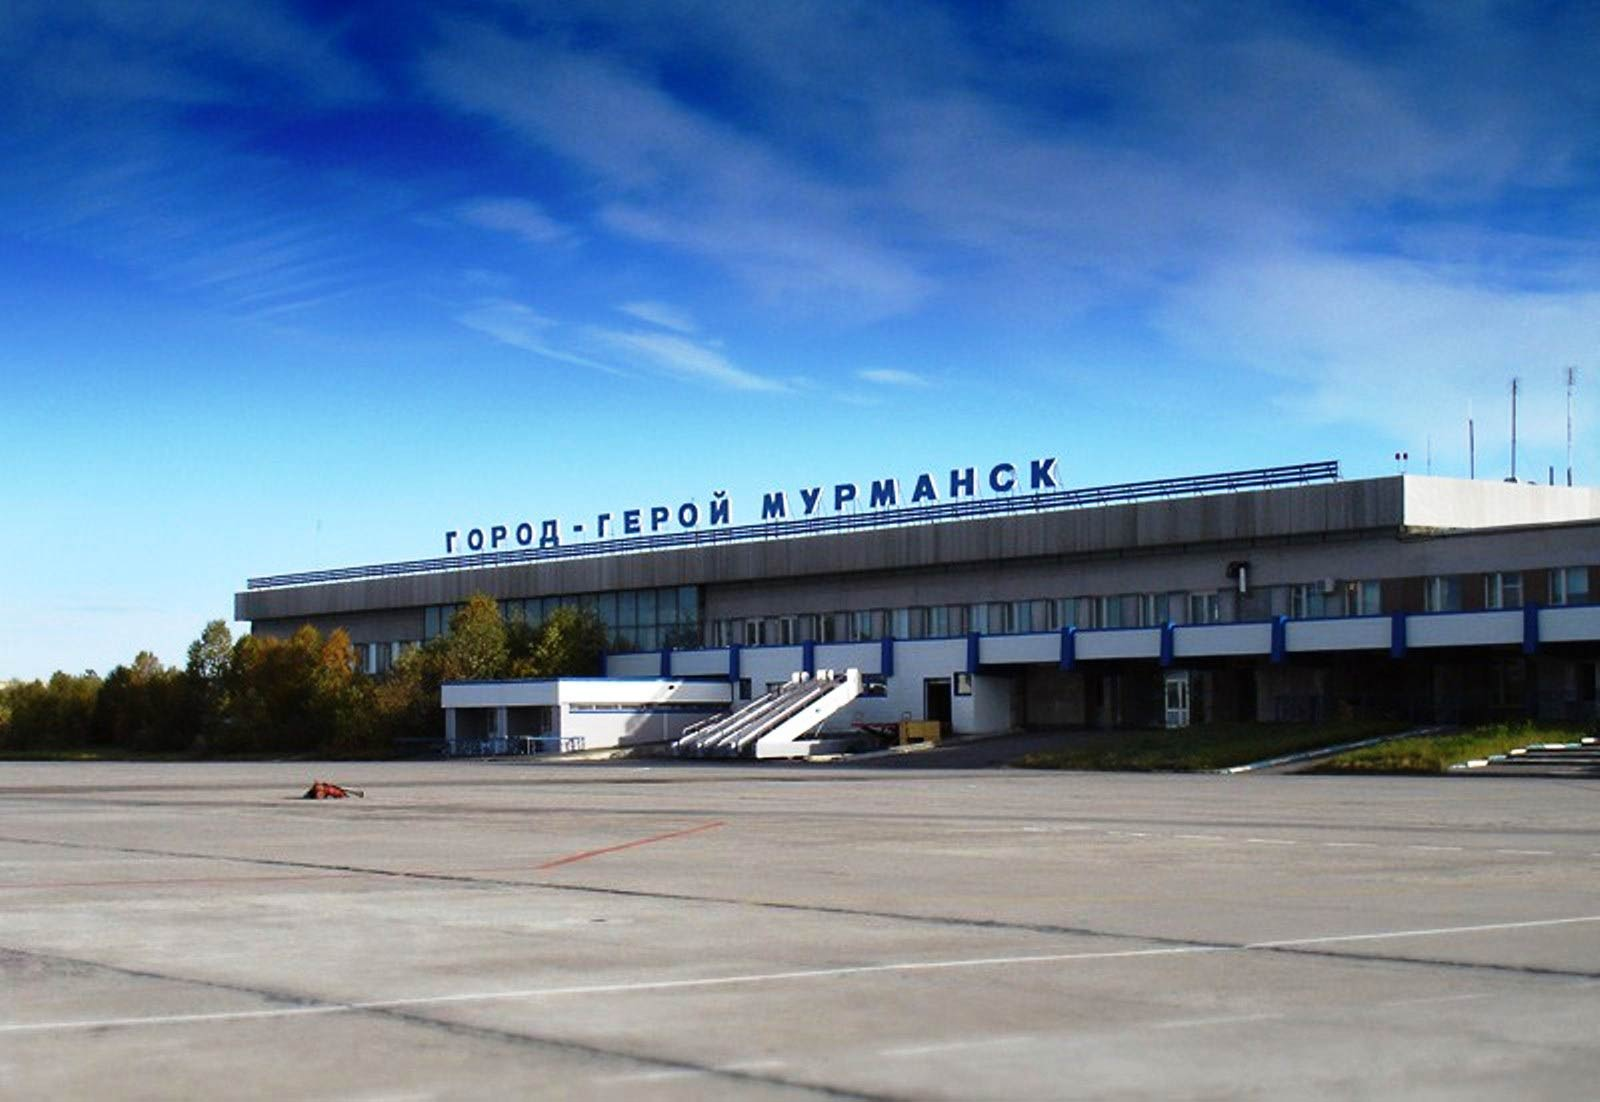 Аэропорт-Мурманск-(Murmansk-Airport).-Расписание-рейсов